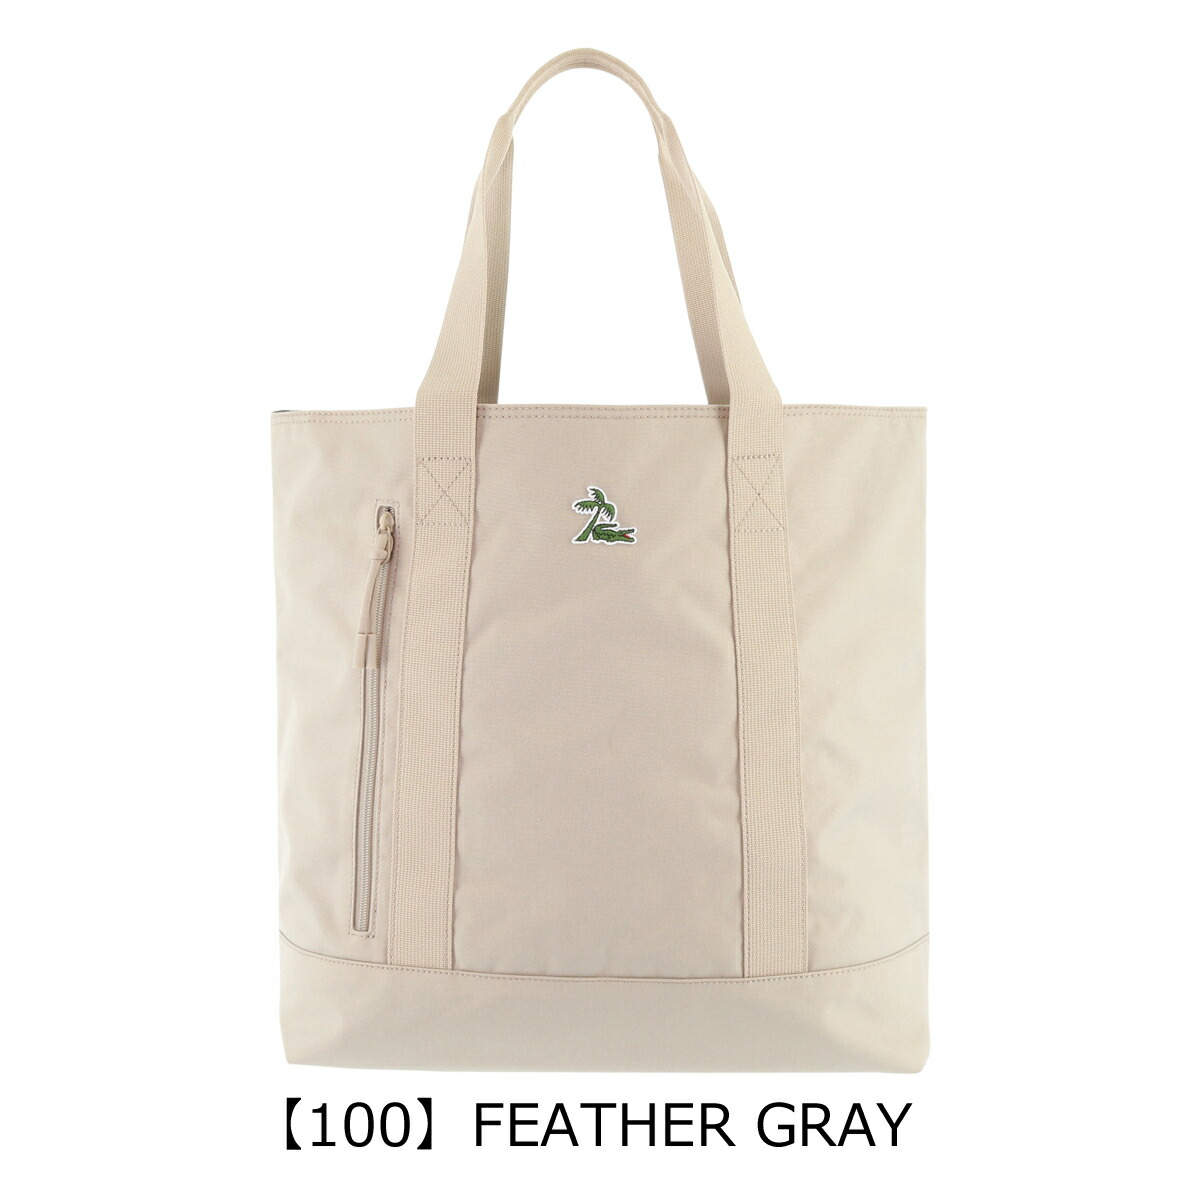 【100】FEATHER GRAY